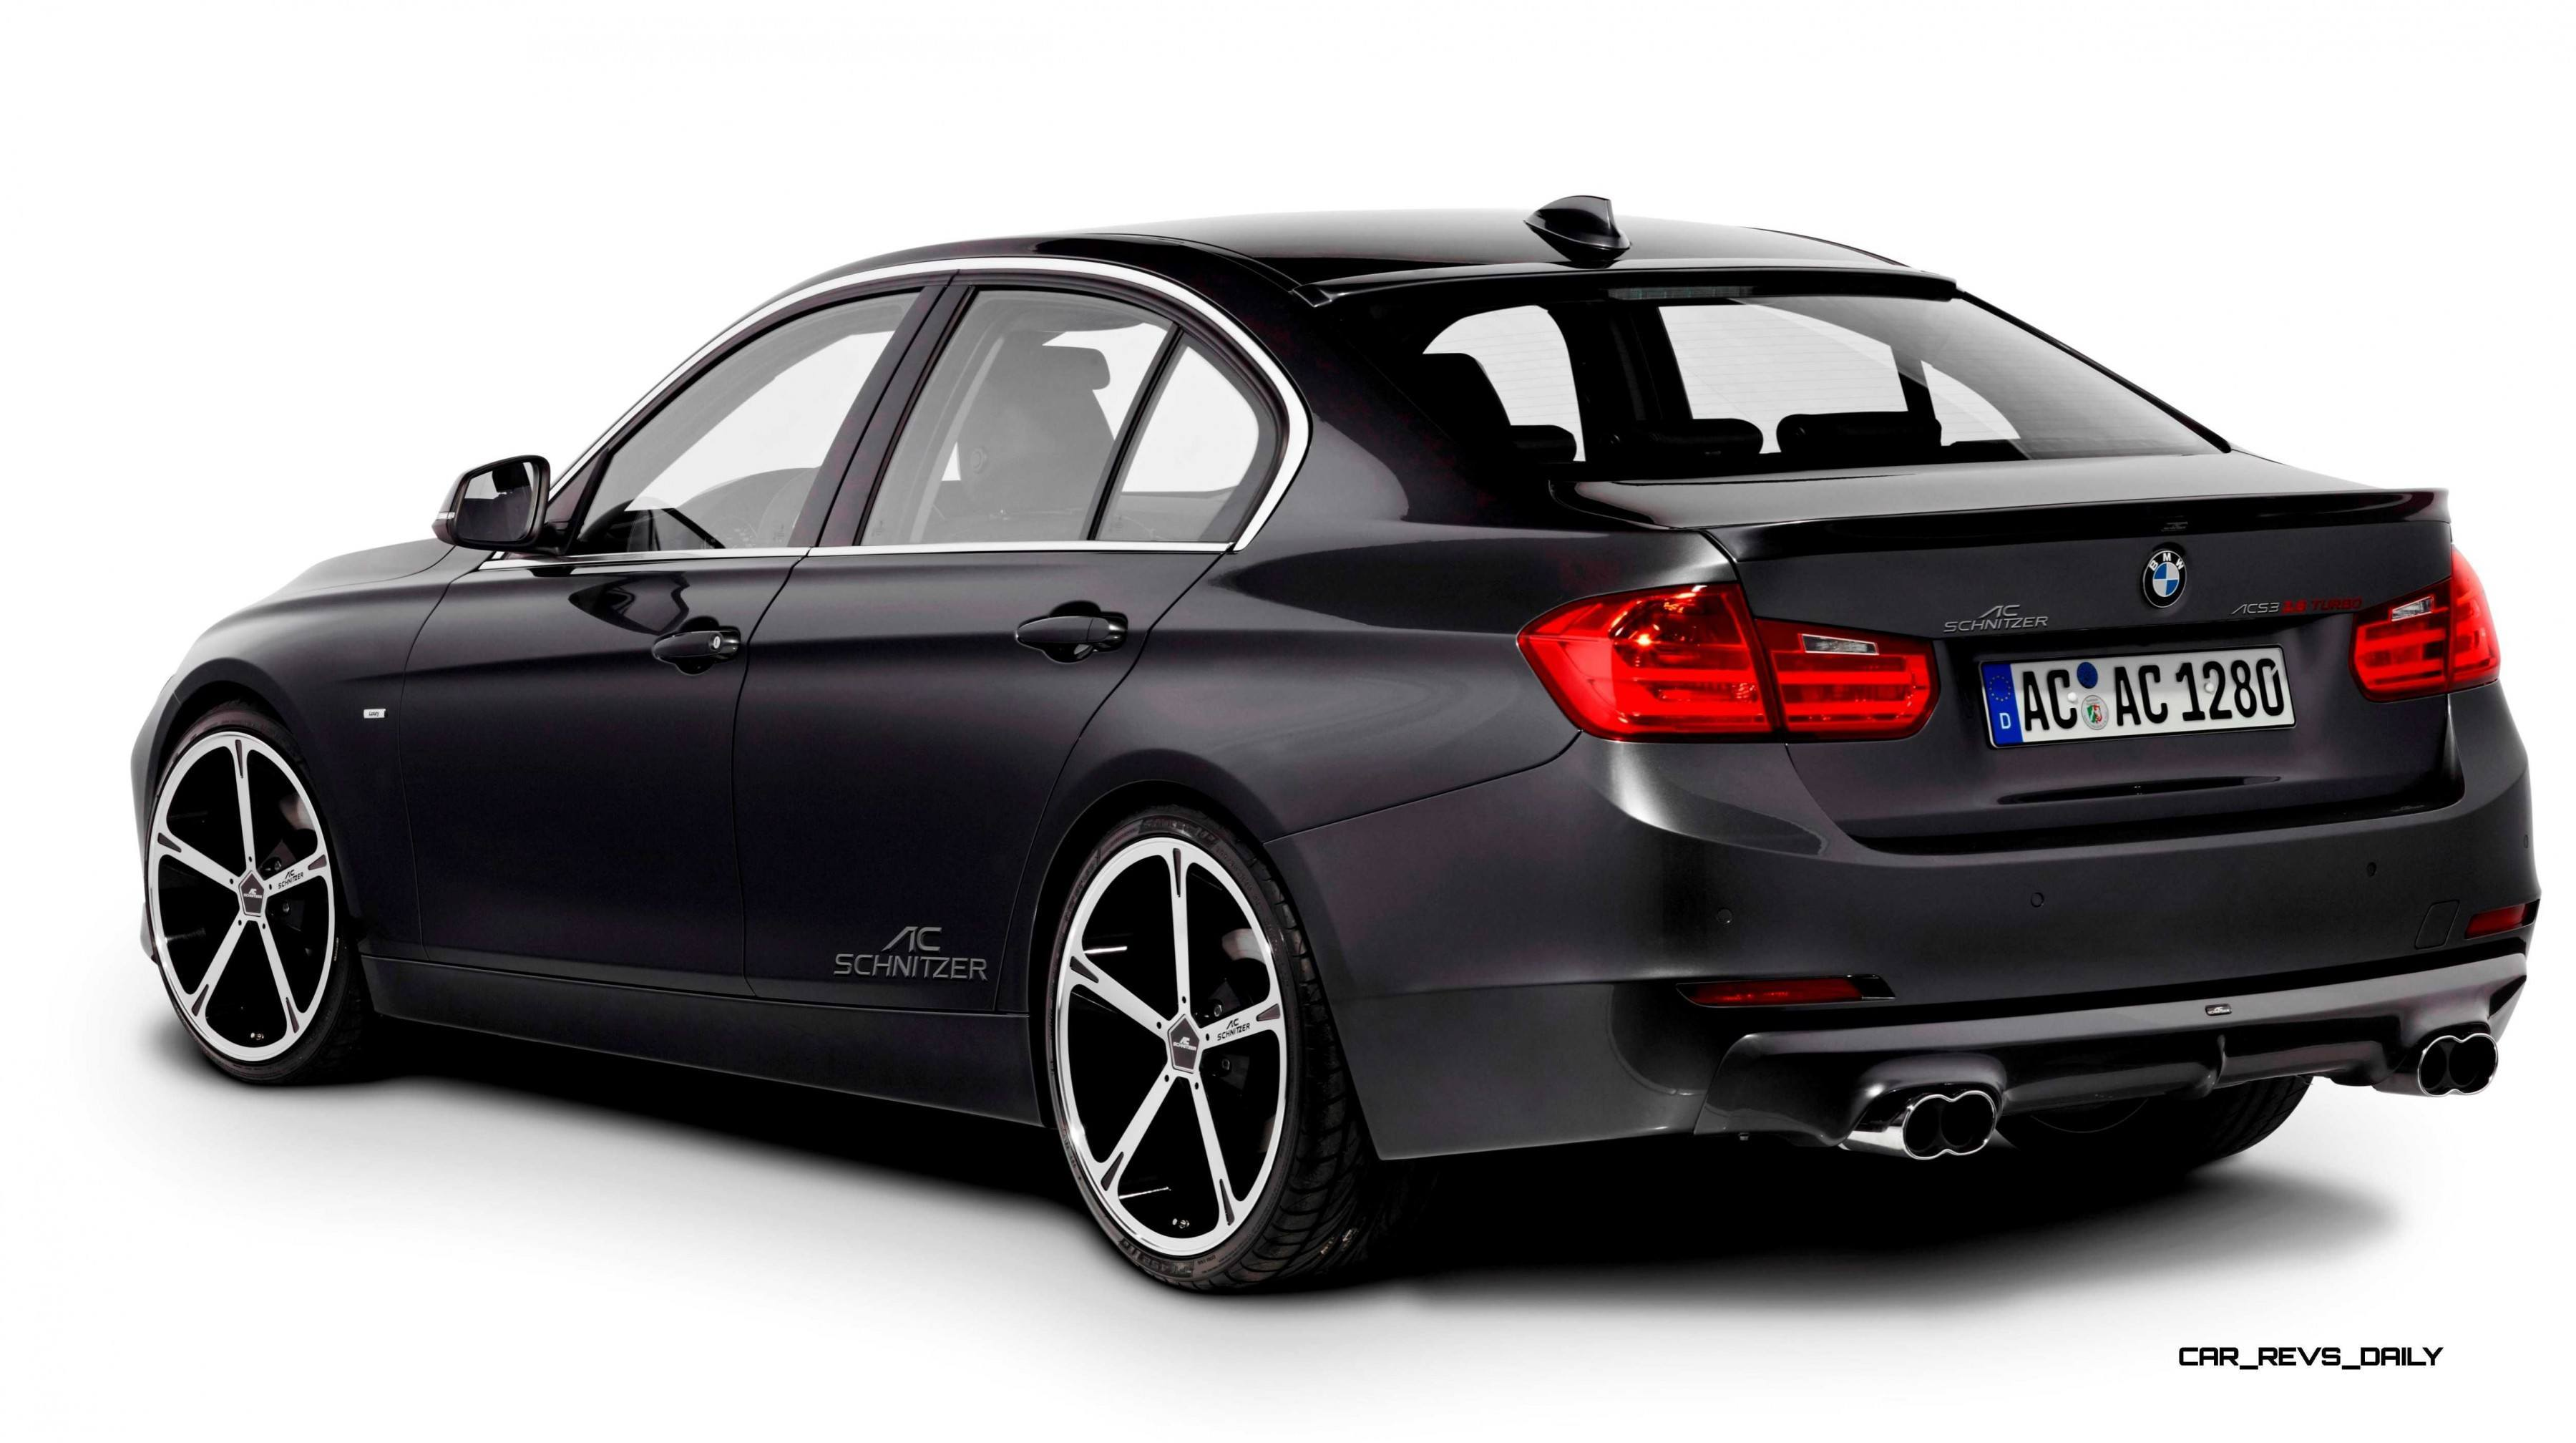 ac schnitzer upgrades gallery for bmw 3 series f30. Black Bedroom Furniture Sets. Home Design Ideas